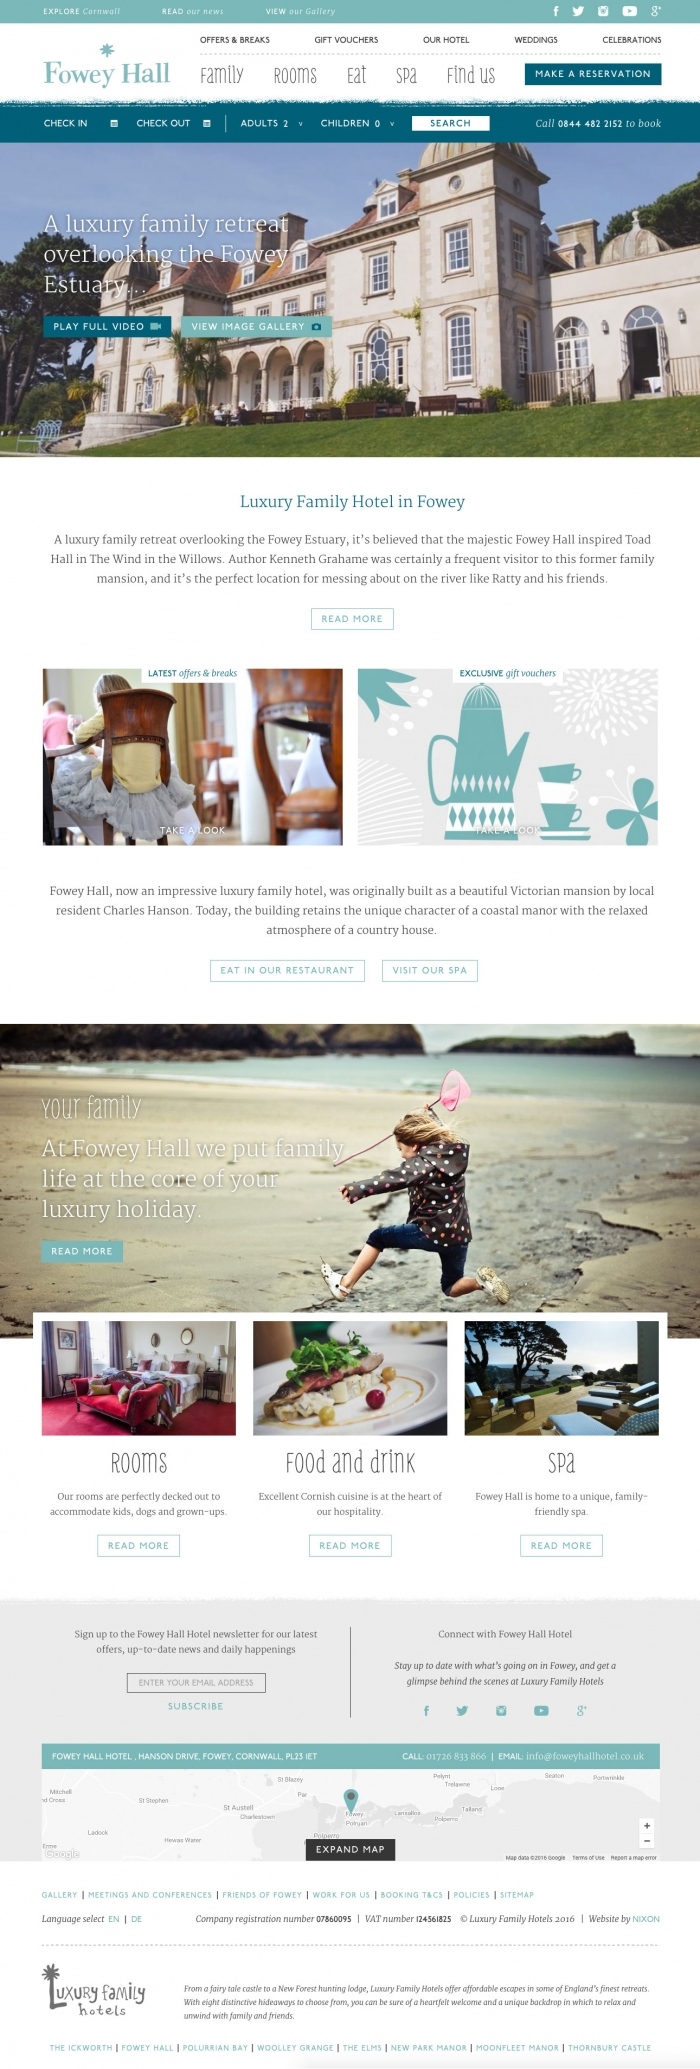 The Fowey Hall Hotel website homepage.